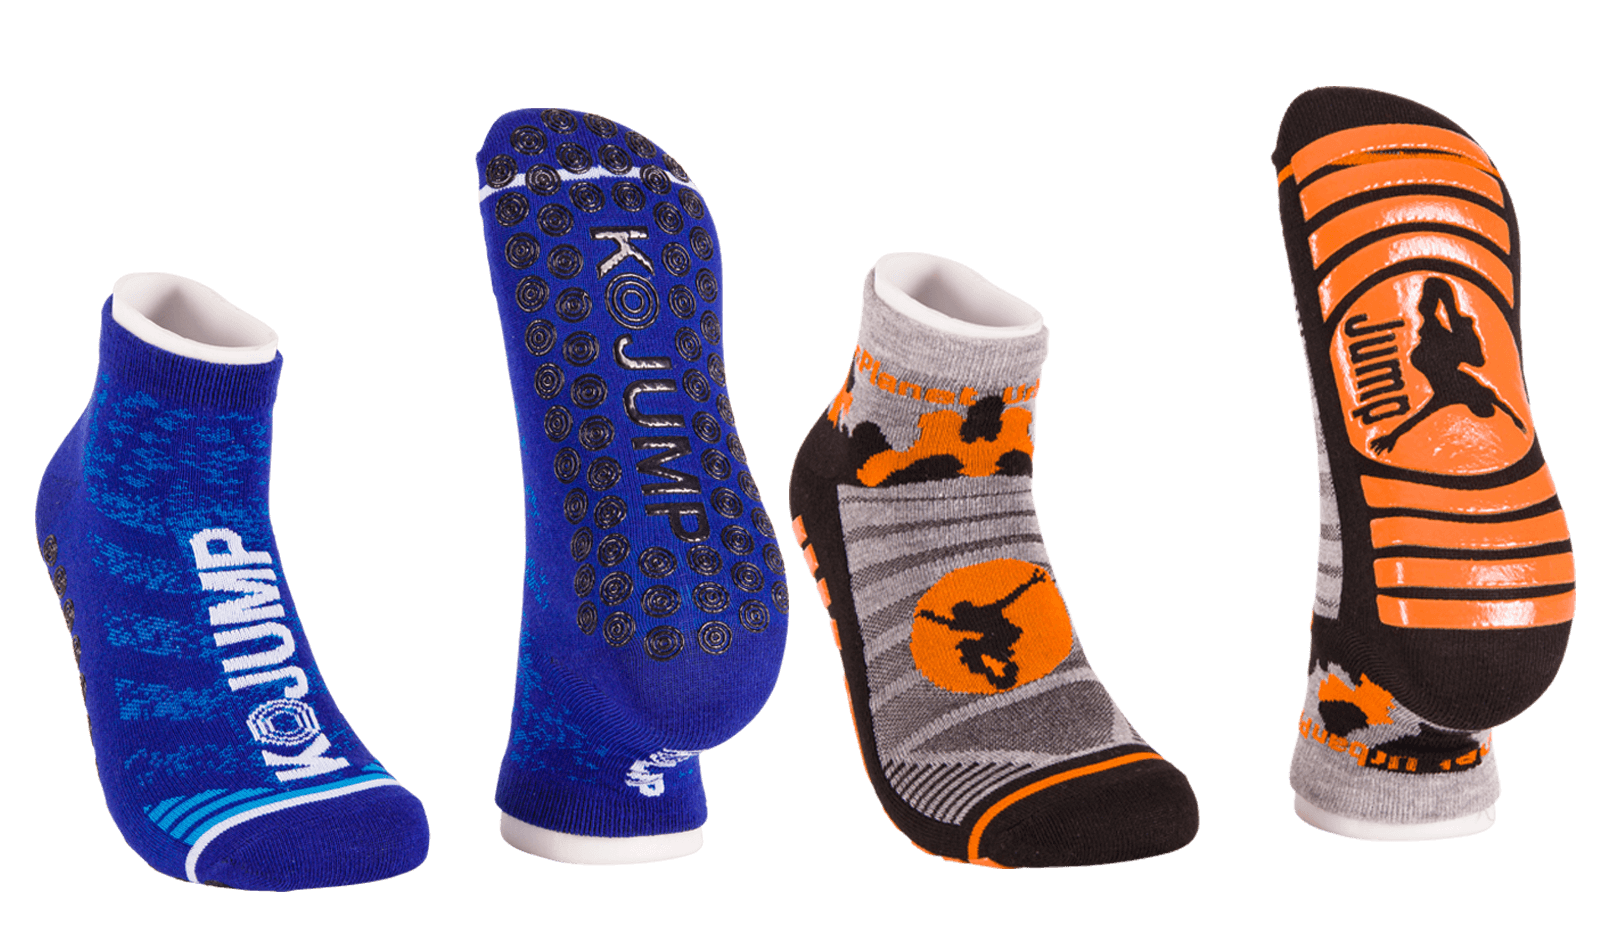 Elite trampoline socks section feature image1